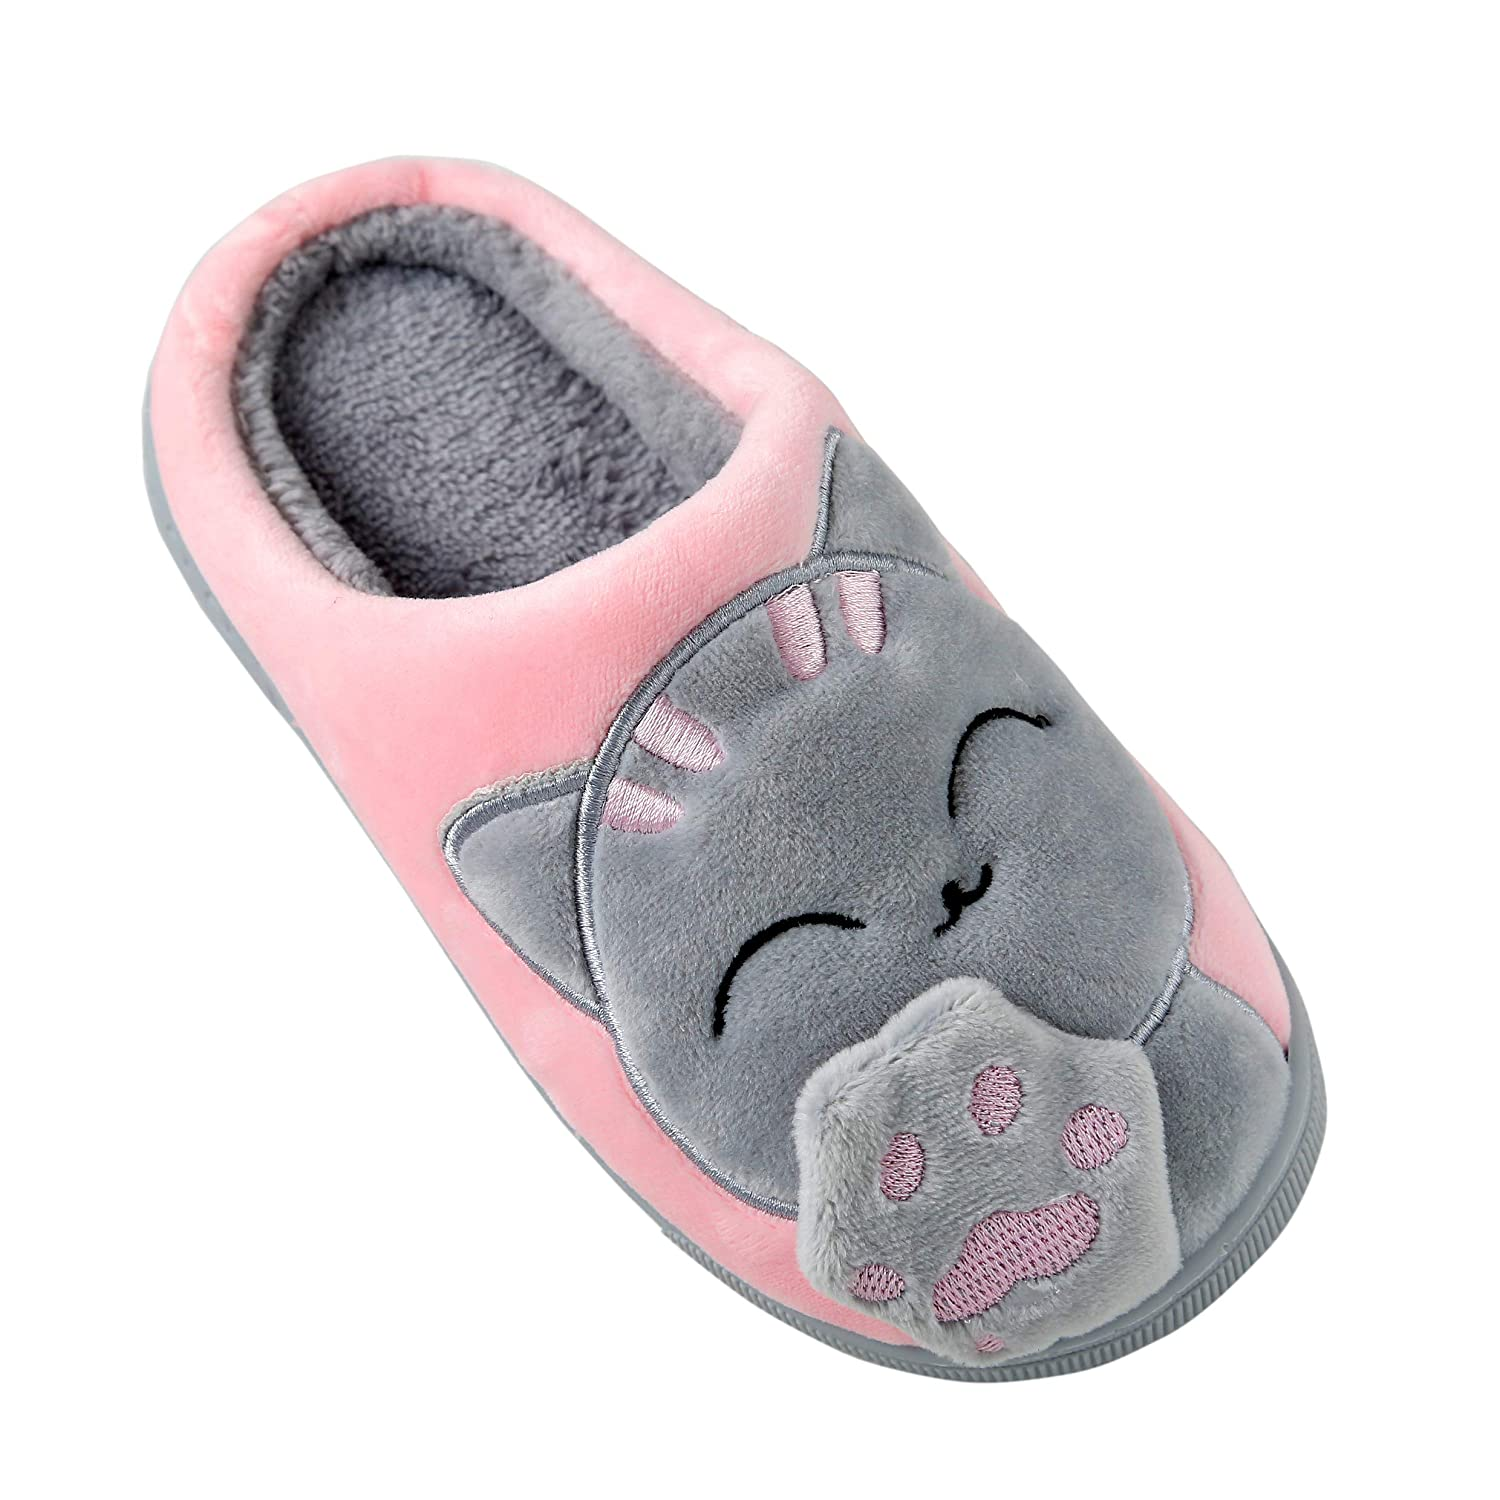 Anddyam Kids Family Cute Household Anti-Slip Indoor Slippers for Girls and Boys